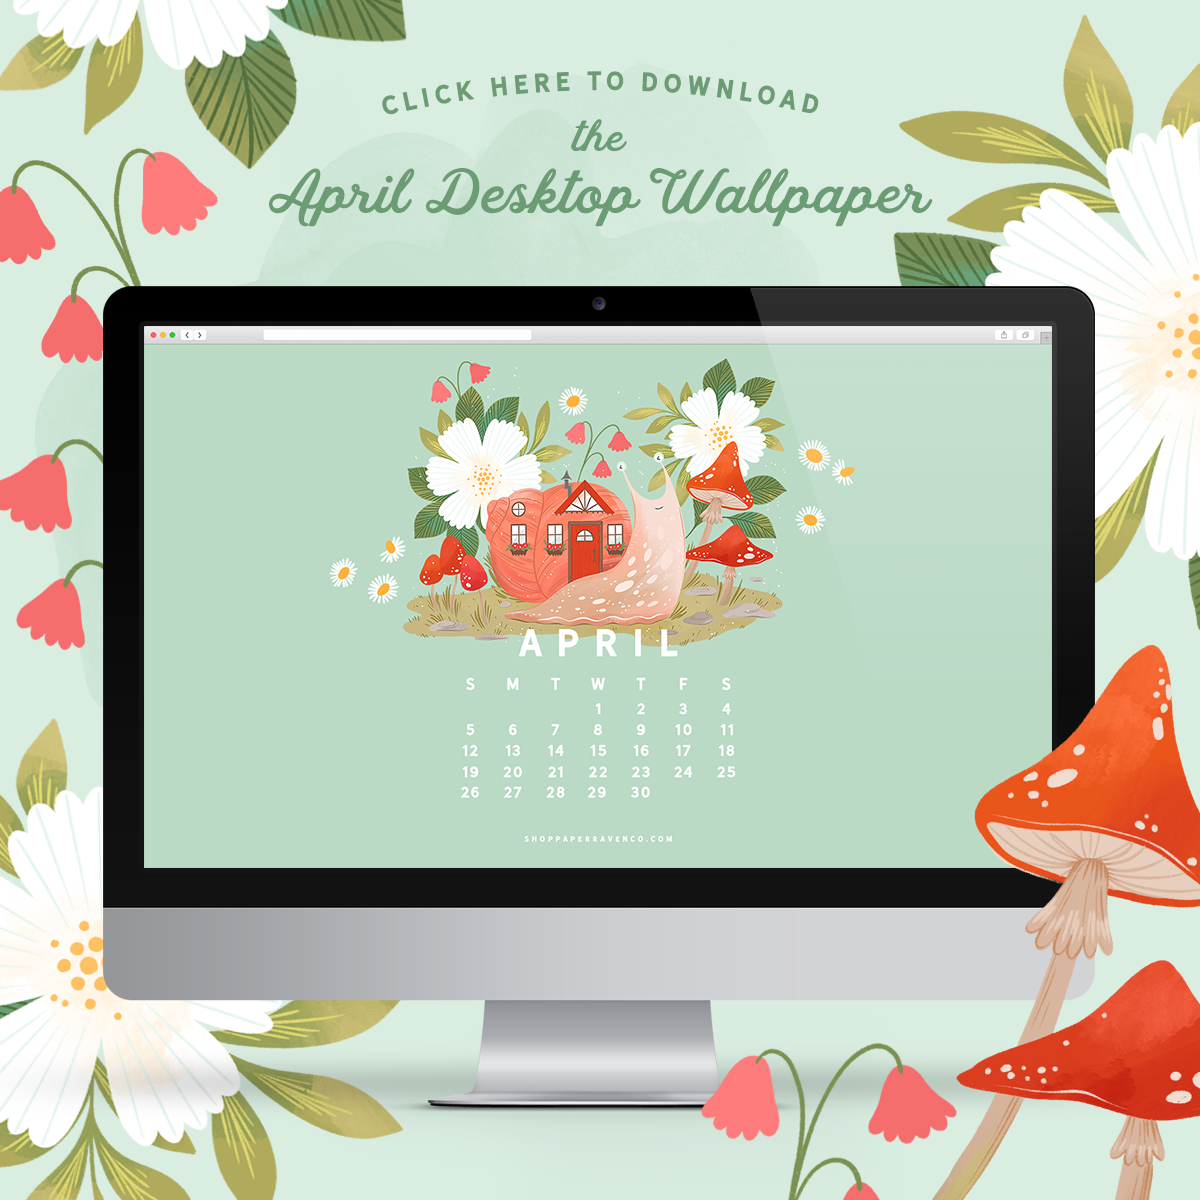 April 2020 Illustrated Desktop Wallpaper by Paper Raven Co. | www.ShopPaperRavenCo.com #dressyourtech #desktopwallpaper #desktopdownload